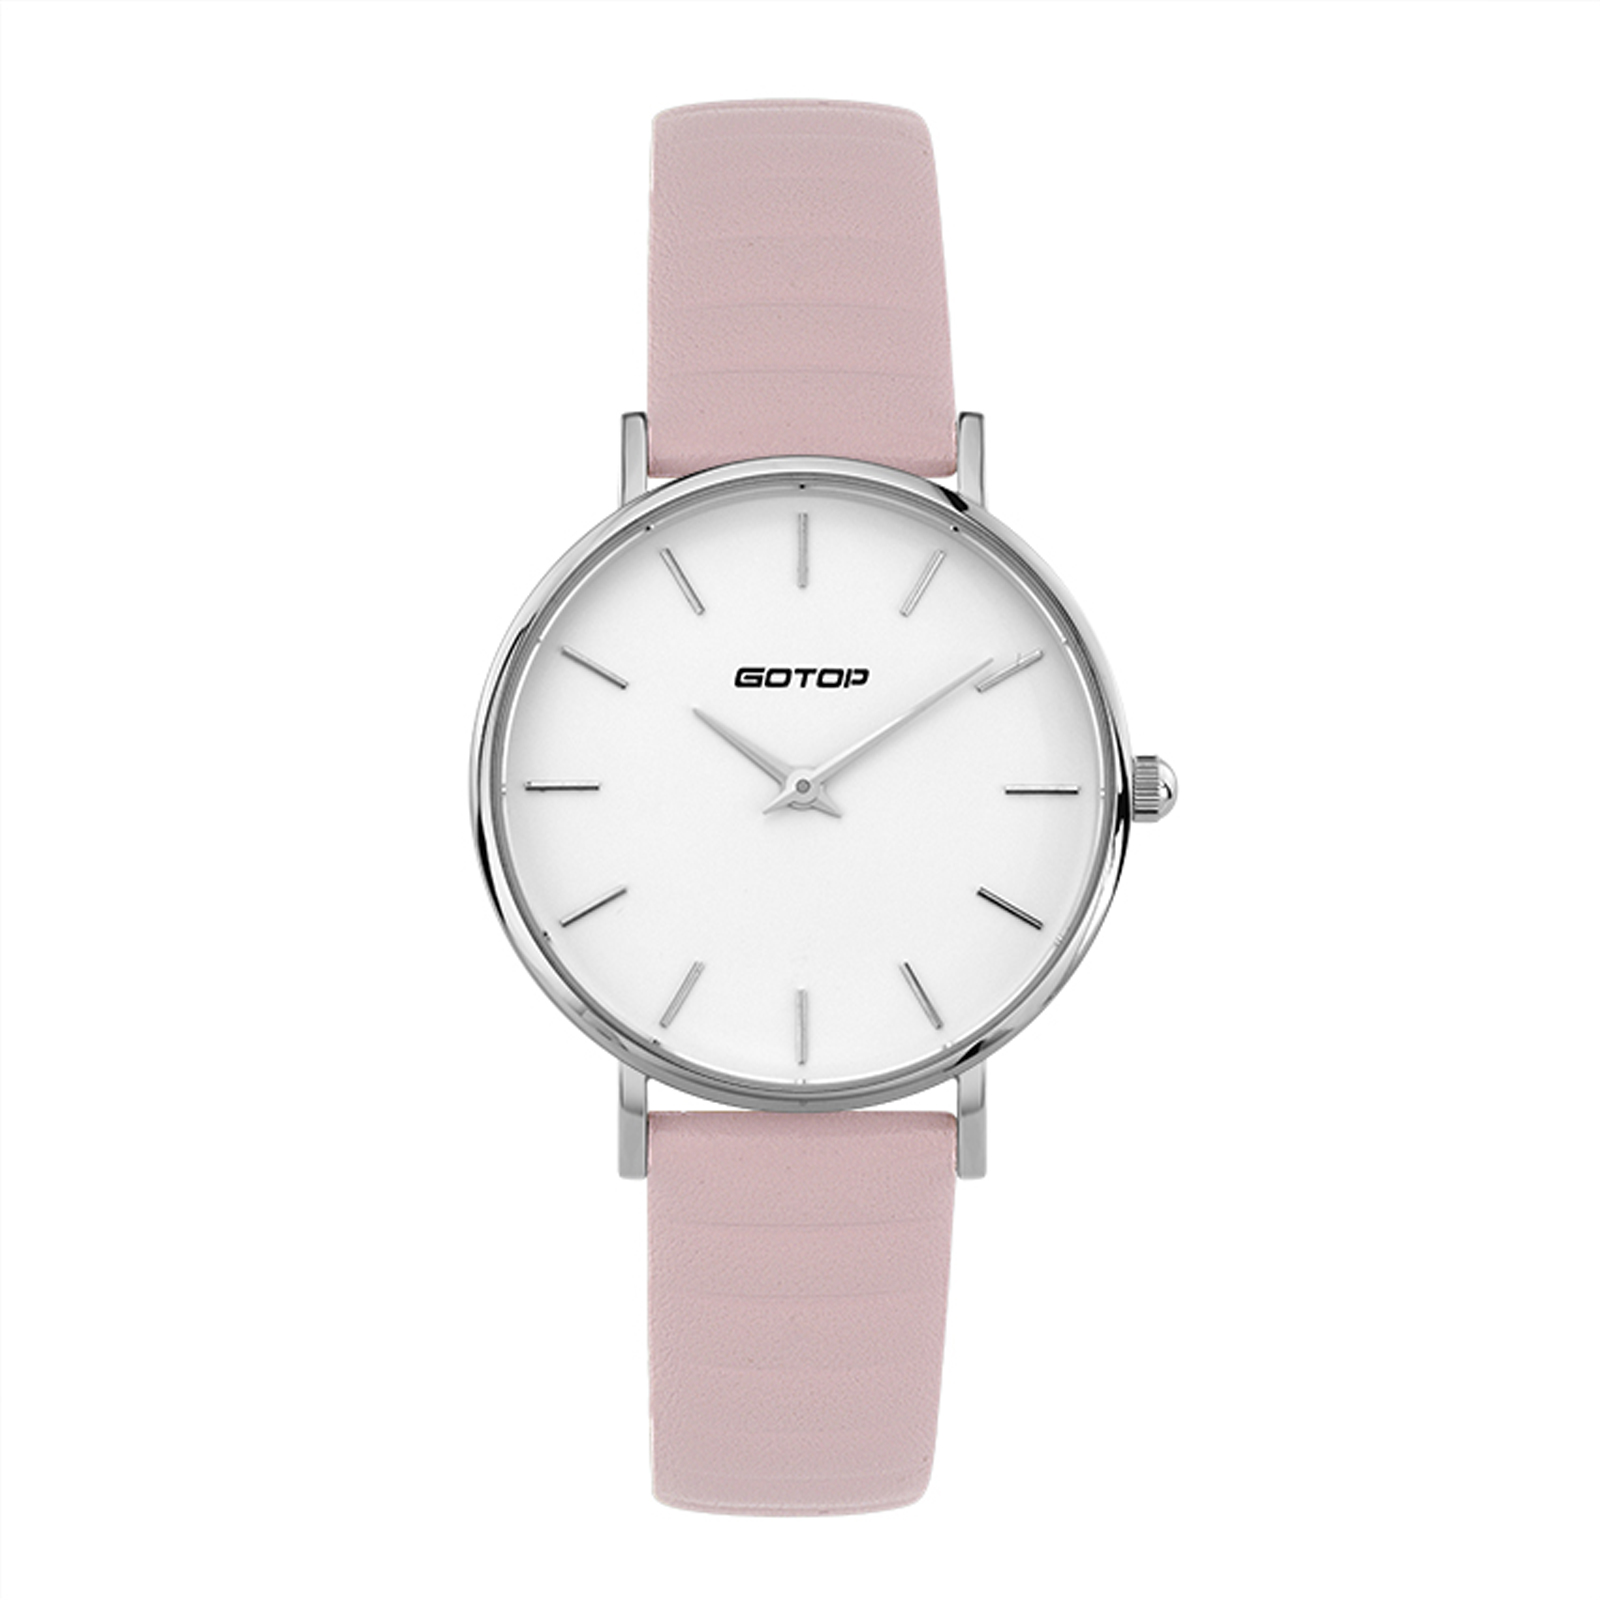 DW Style Silver And White Women's Watch With Pink Leather Strap